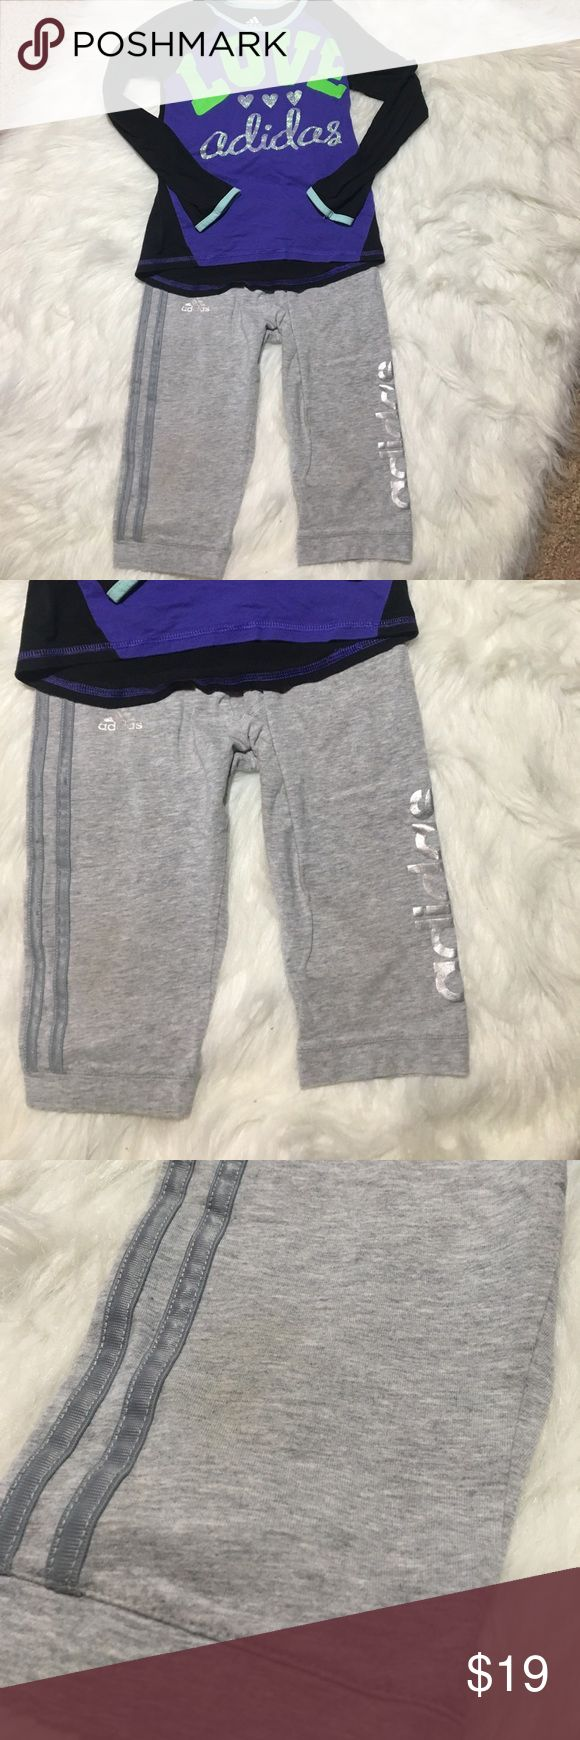 """Adidas Girls Bundle Capri & Shirt 6/6X Athletic Adidas Girls Bundle Capri & Shirt 6/6X Athletic bottoms are size 6X and measures approx 10 1/2"""" waist laying flat, 7"""" rise, 10 1/2"""" inseam pants have slight stain at bottom as shown. They have silver adidas on side of pants, super comfy material. Shirt is Black with Love in Green Adidas is in Glitter print. Measures approx 10"""" underarm to underarm, 17"""" long. Good used condition shirt is size 6 adidas Matching Sets"""